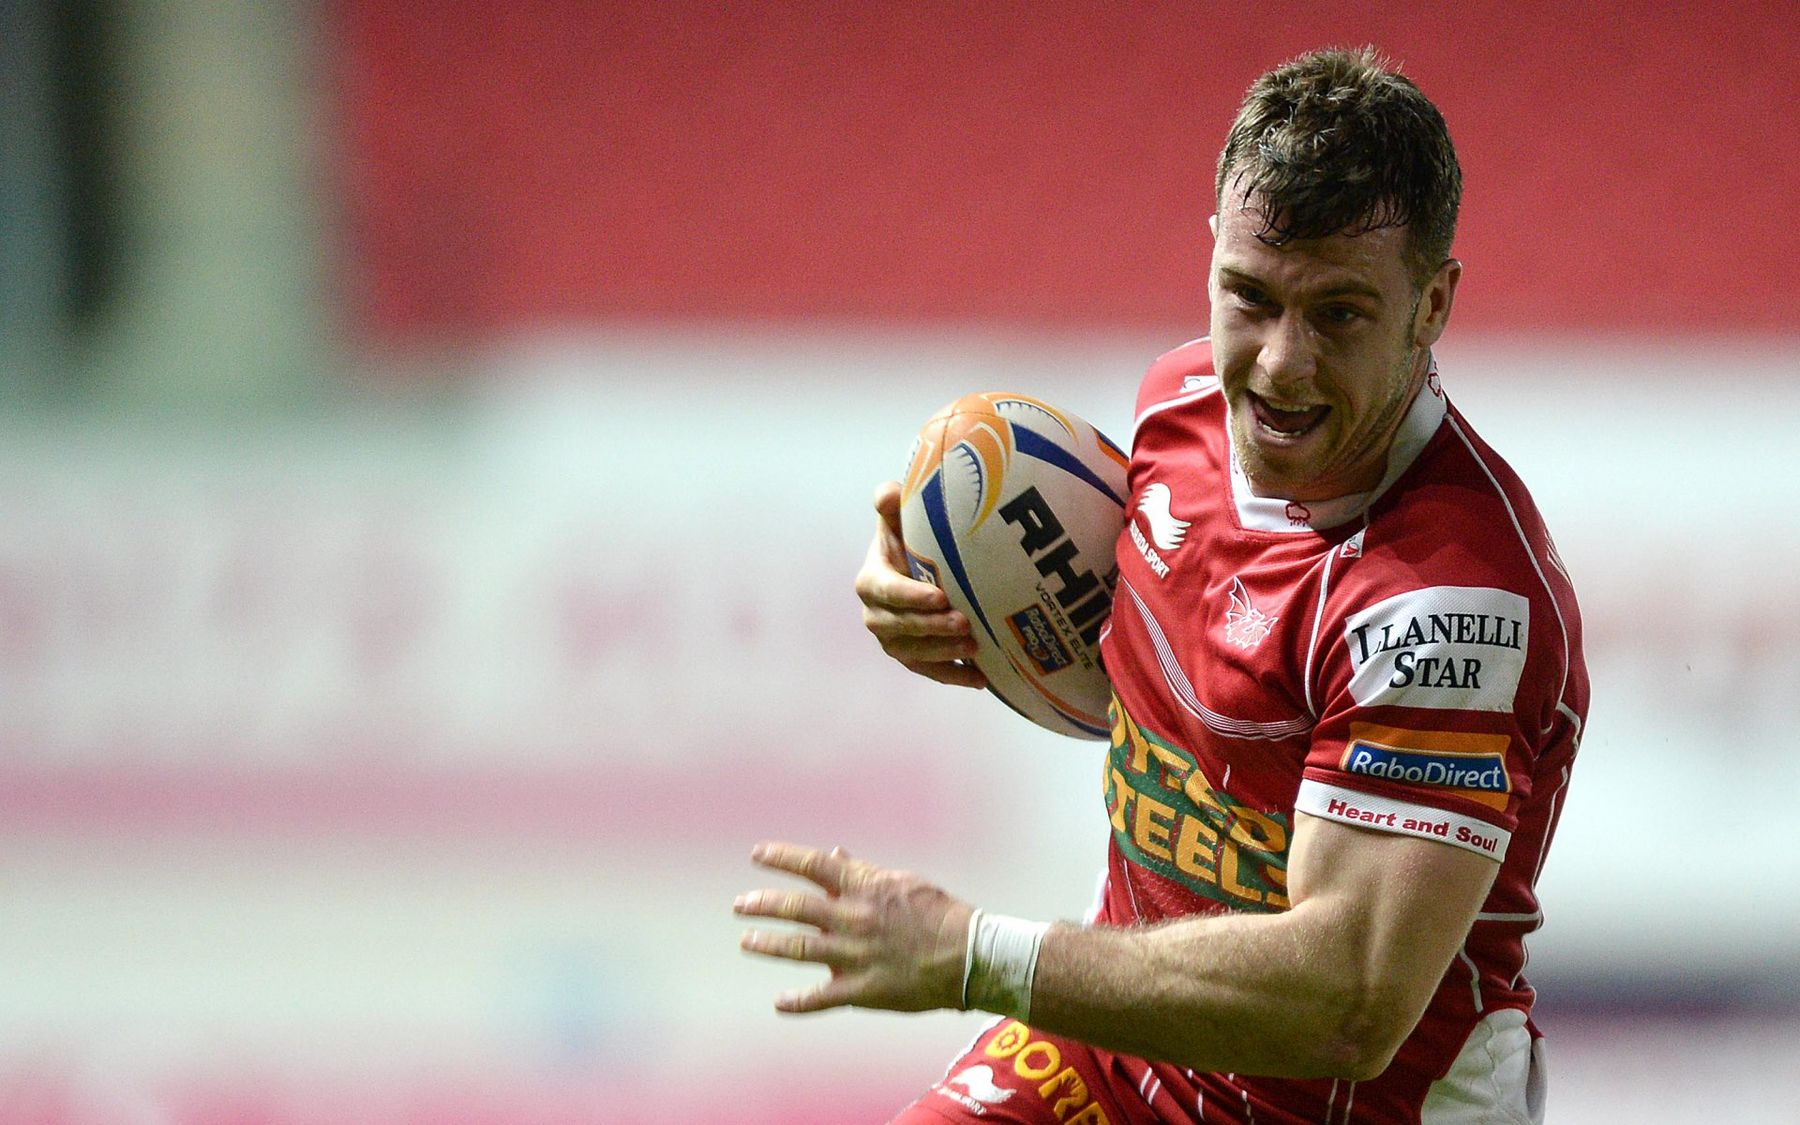 Davies returns in Llanelli romp